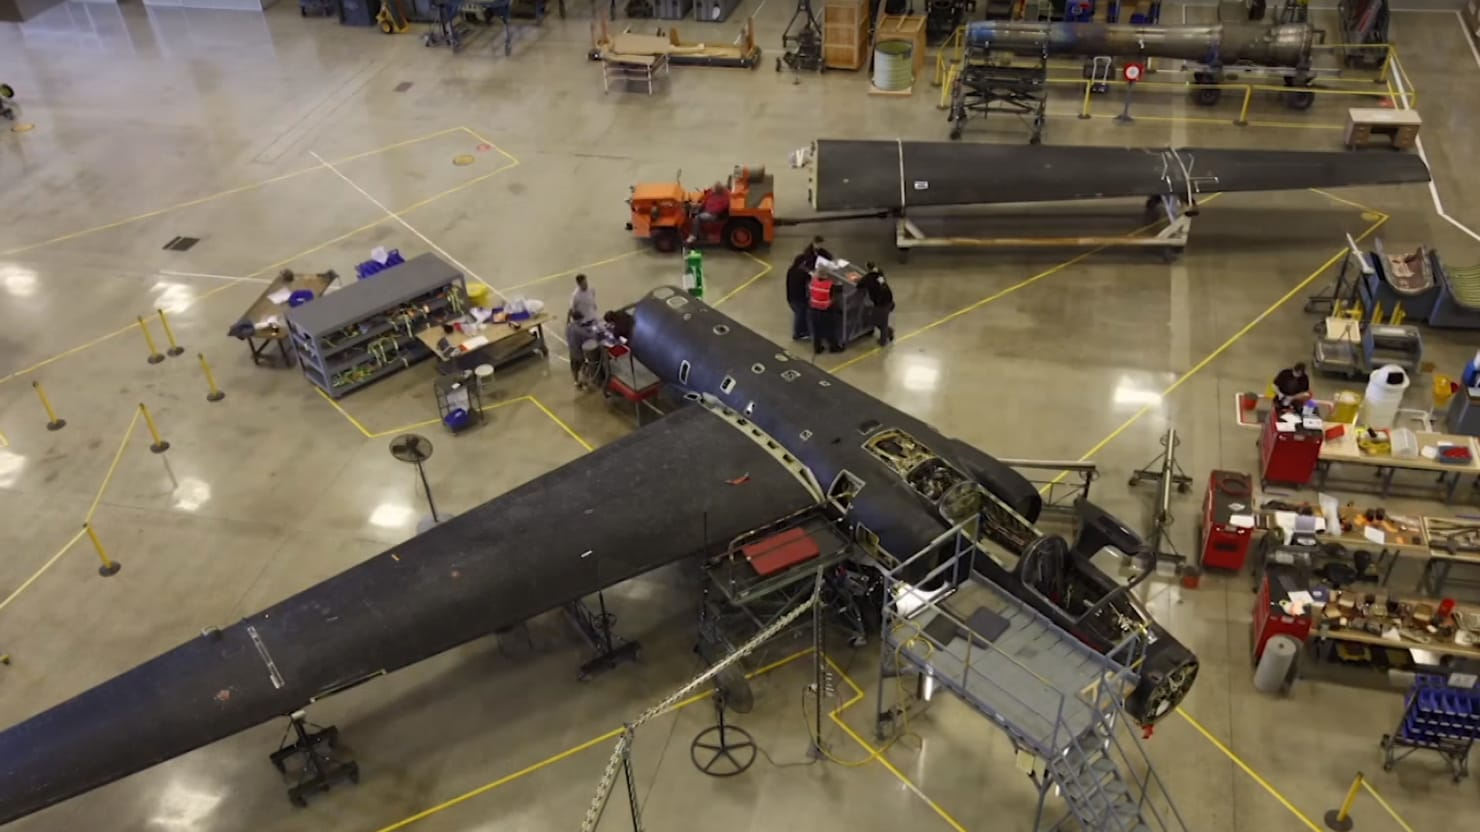 Disassembling A U 2 Spy Plane